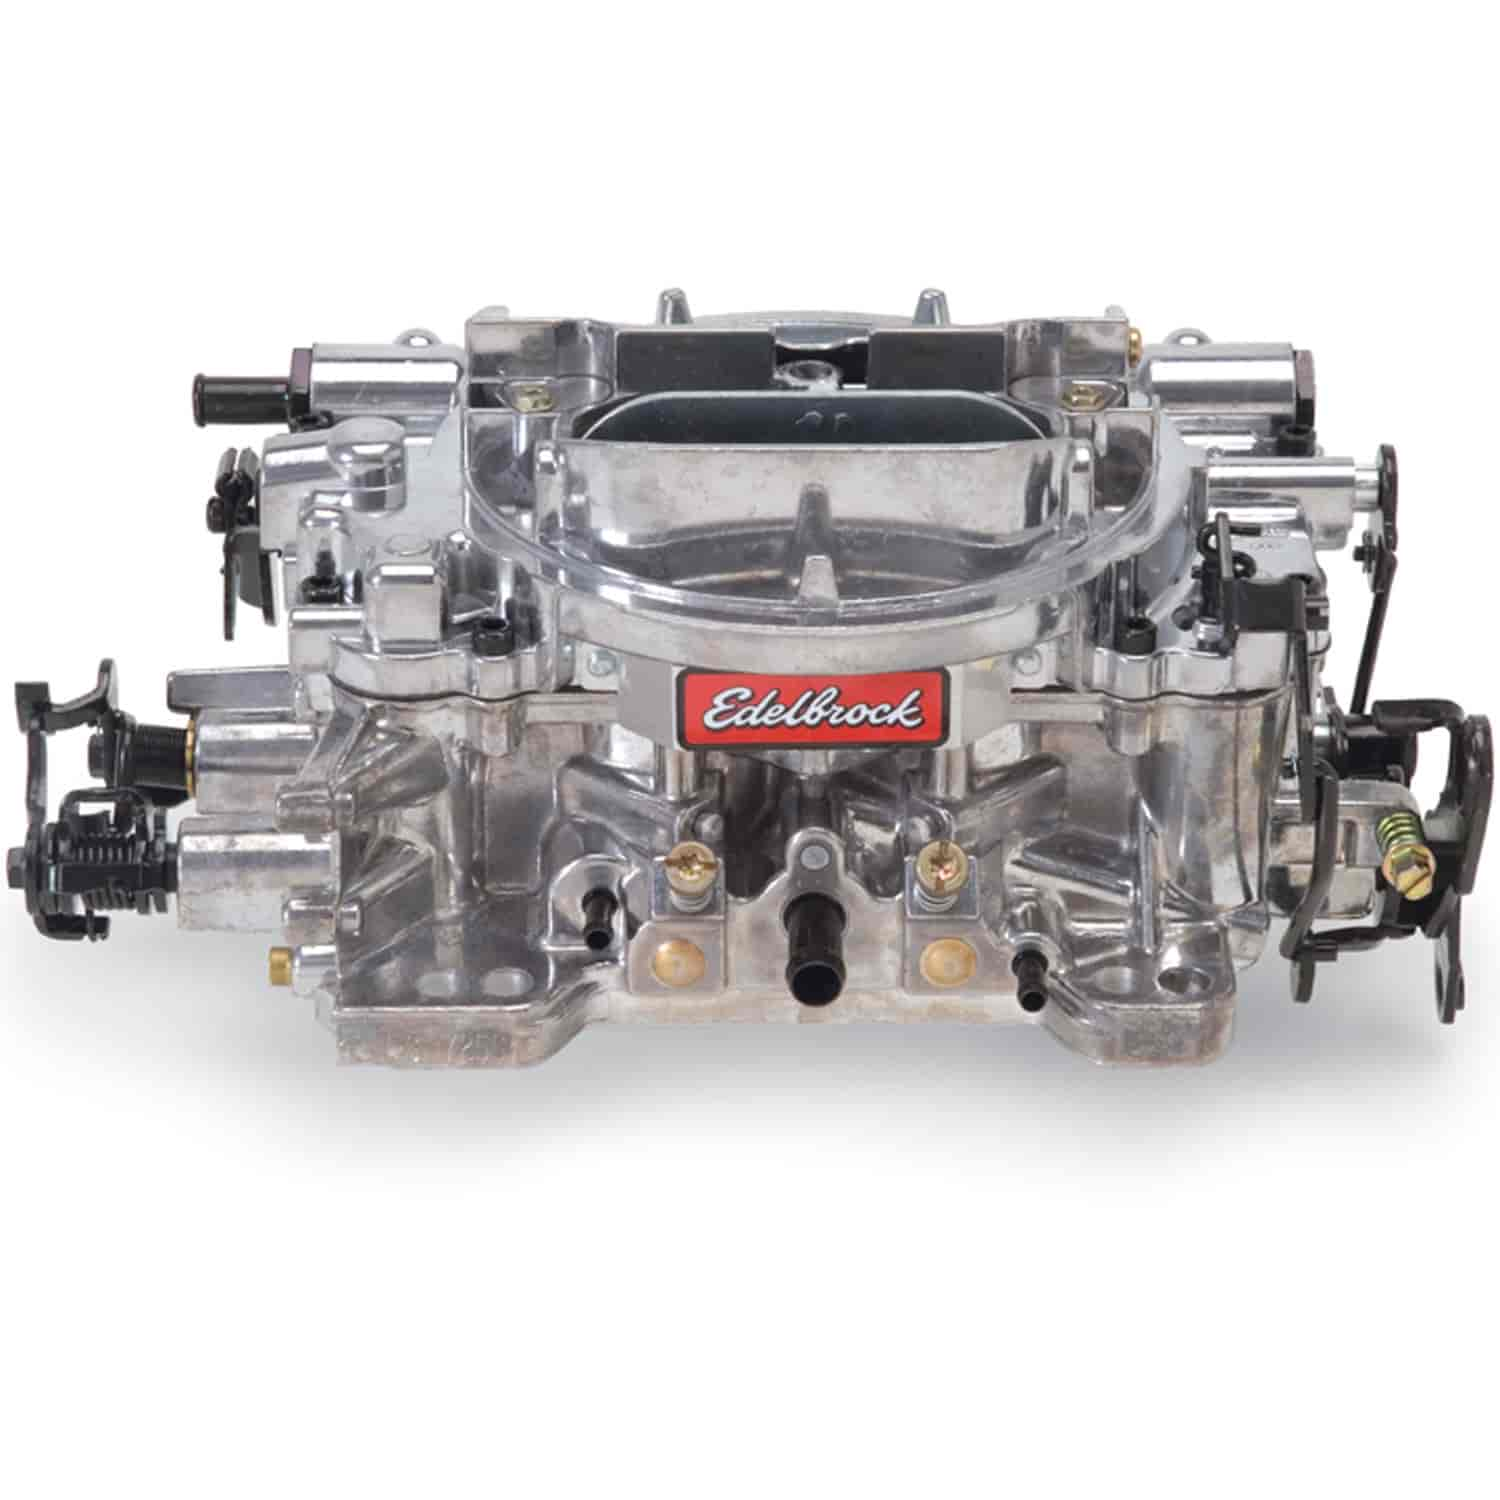 Edelbrock 1802 Thunder Series Avs 500 Cfm Carburetor With Manual 1986 Chevy C20 Vacuum Diagram Wiring Schematic Choke